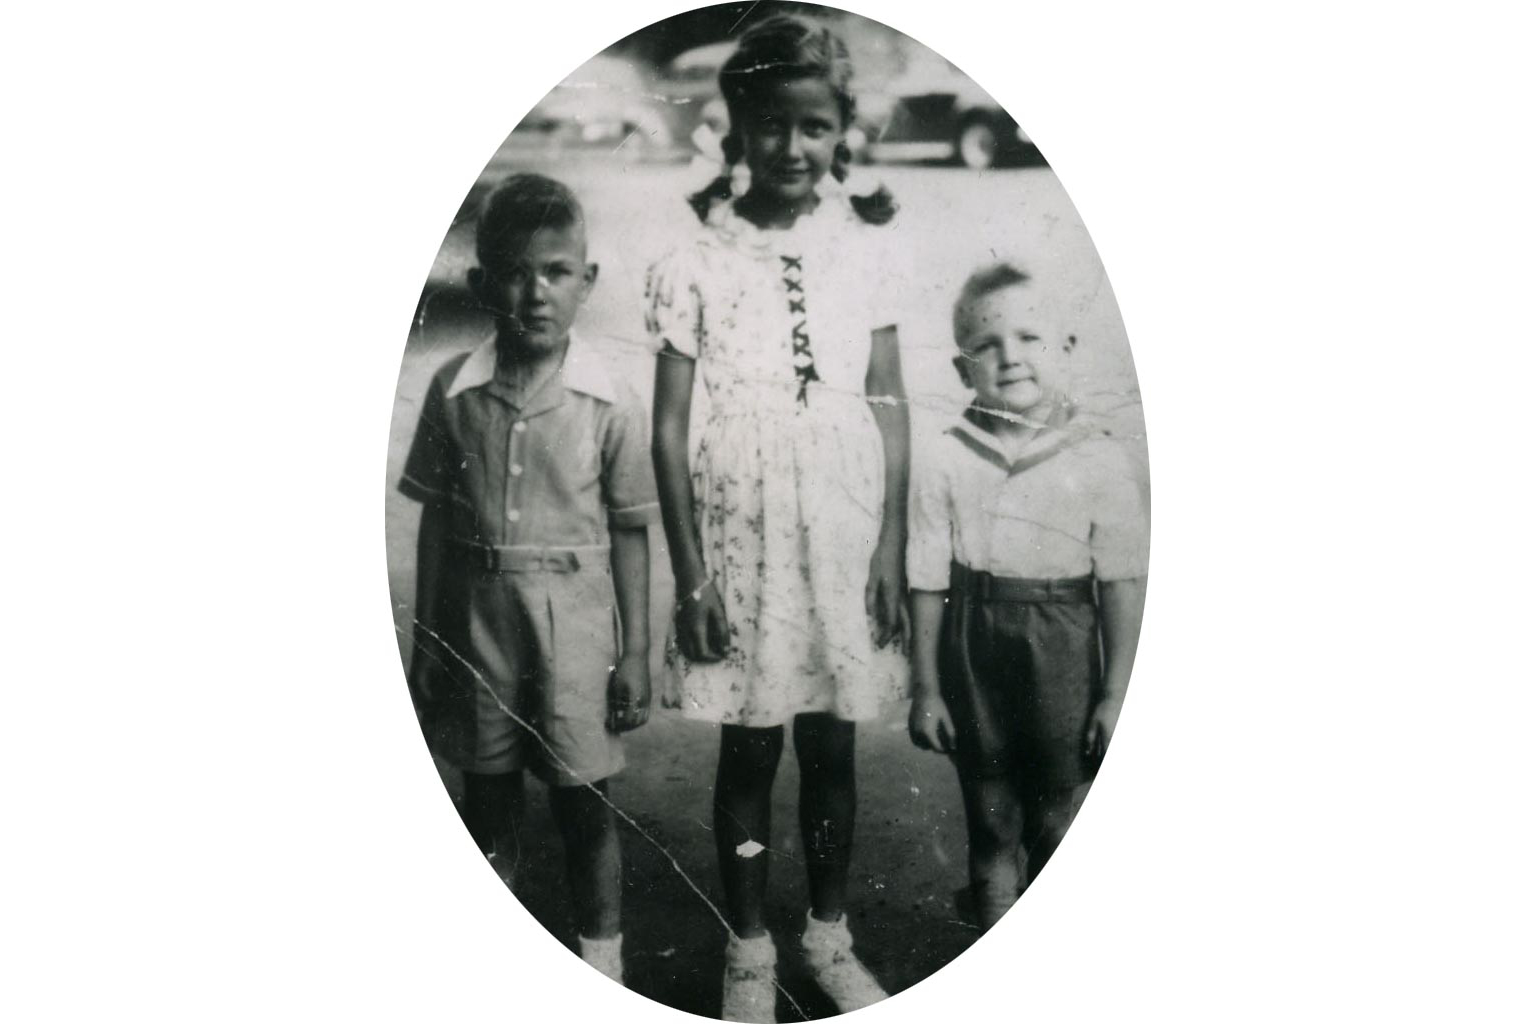 (left to right) Jim, Chris, and Jack Cradocks. 1946.